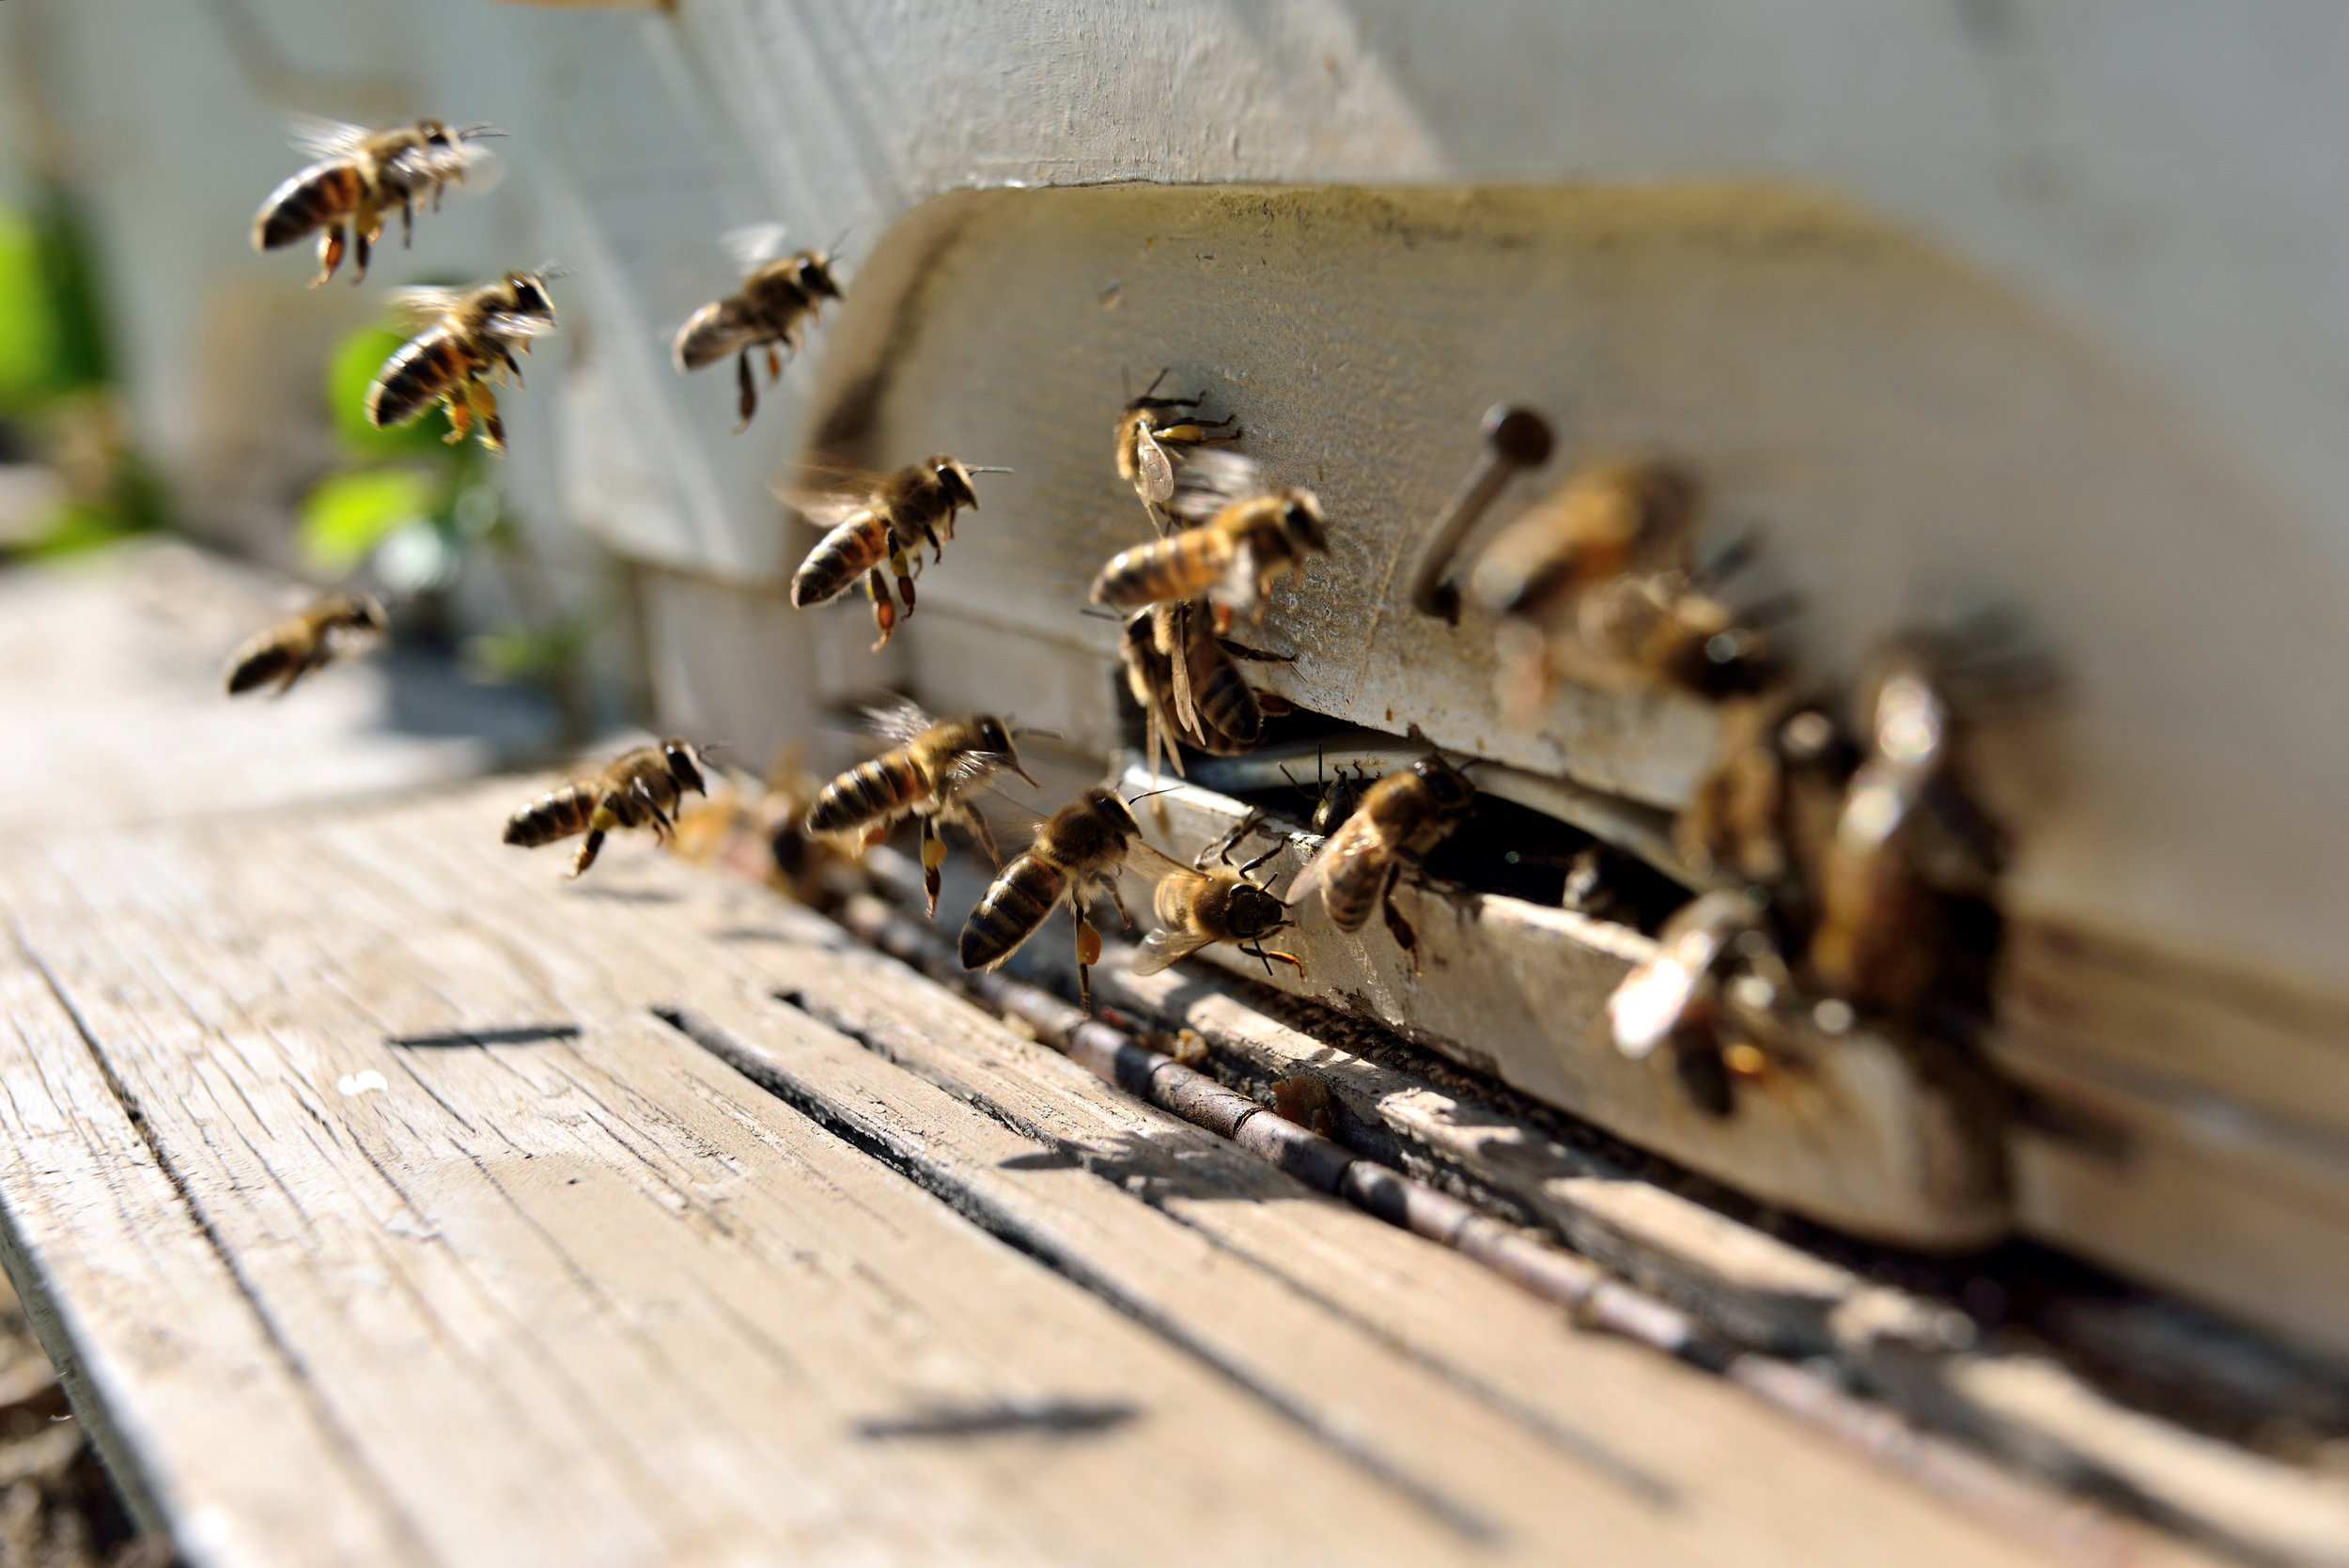 Which Methods Does an Exterminator Use to Eliminate Bees and Wasps in New Jersey?